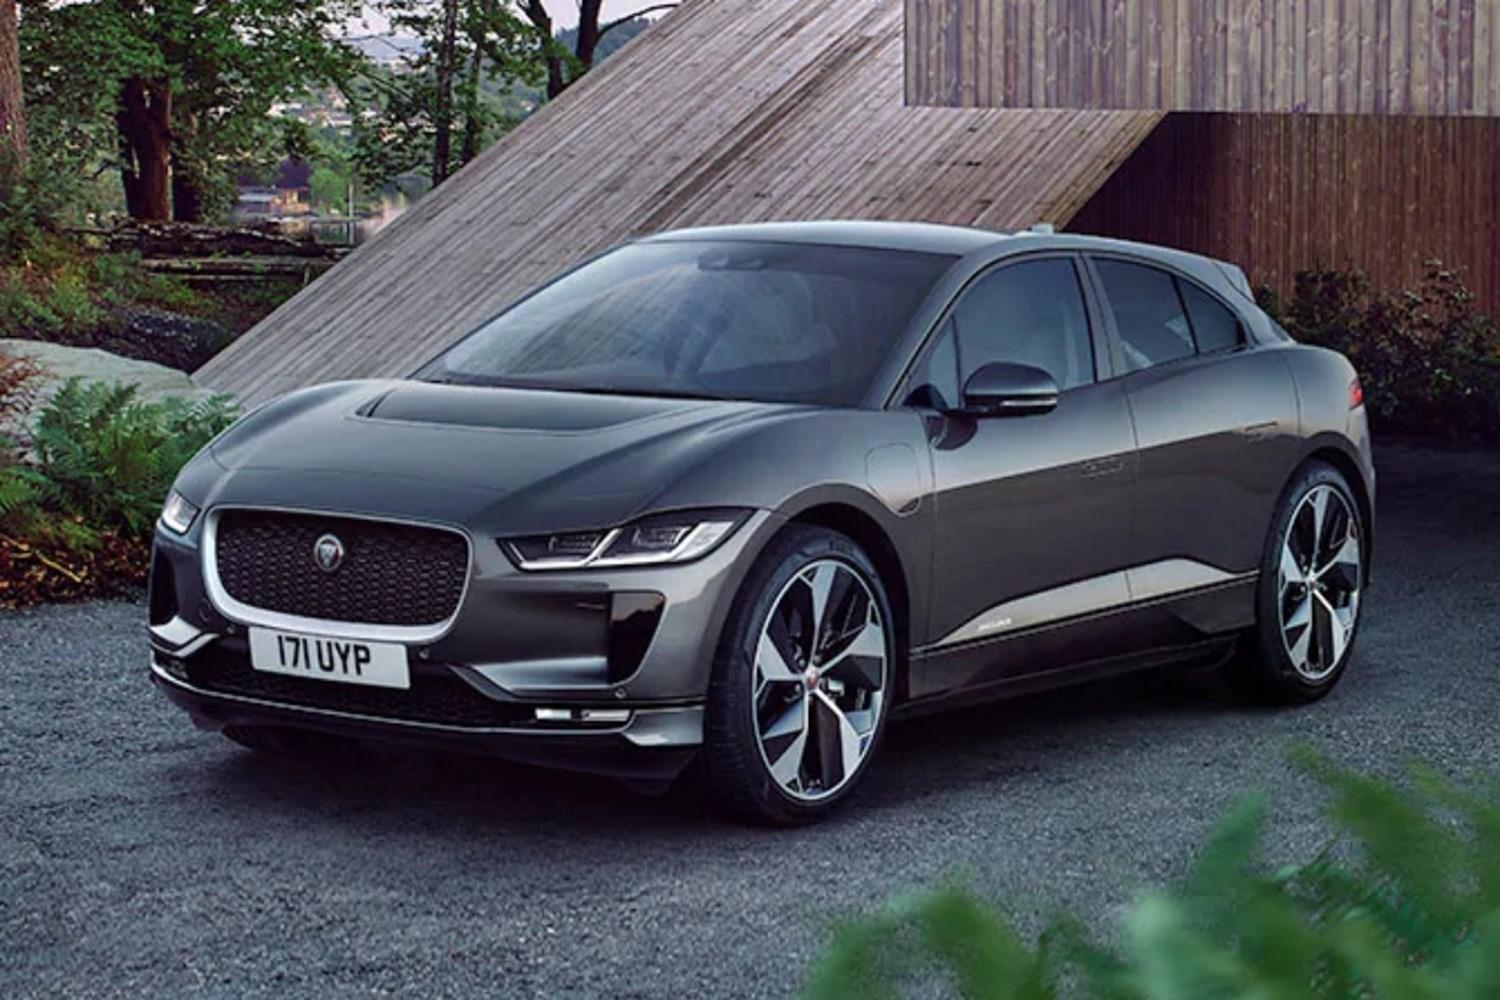 Grey Jaguar I-Pace front end